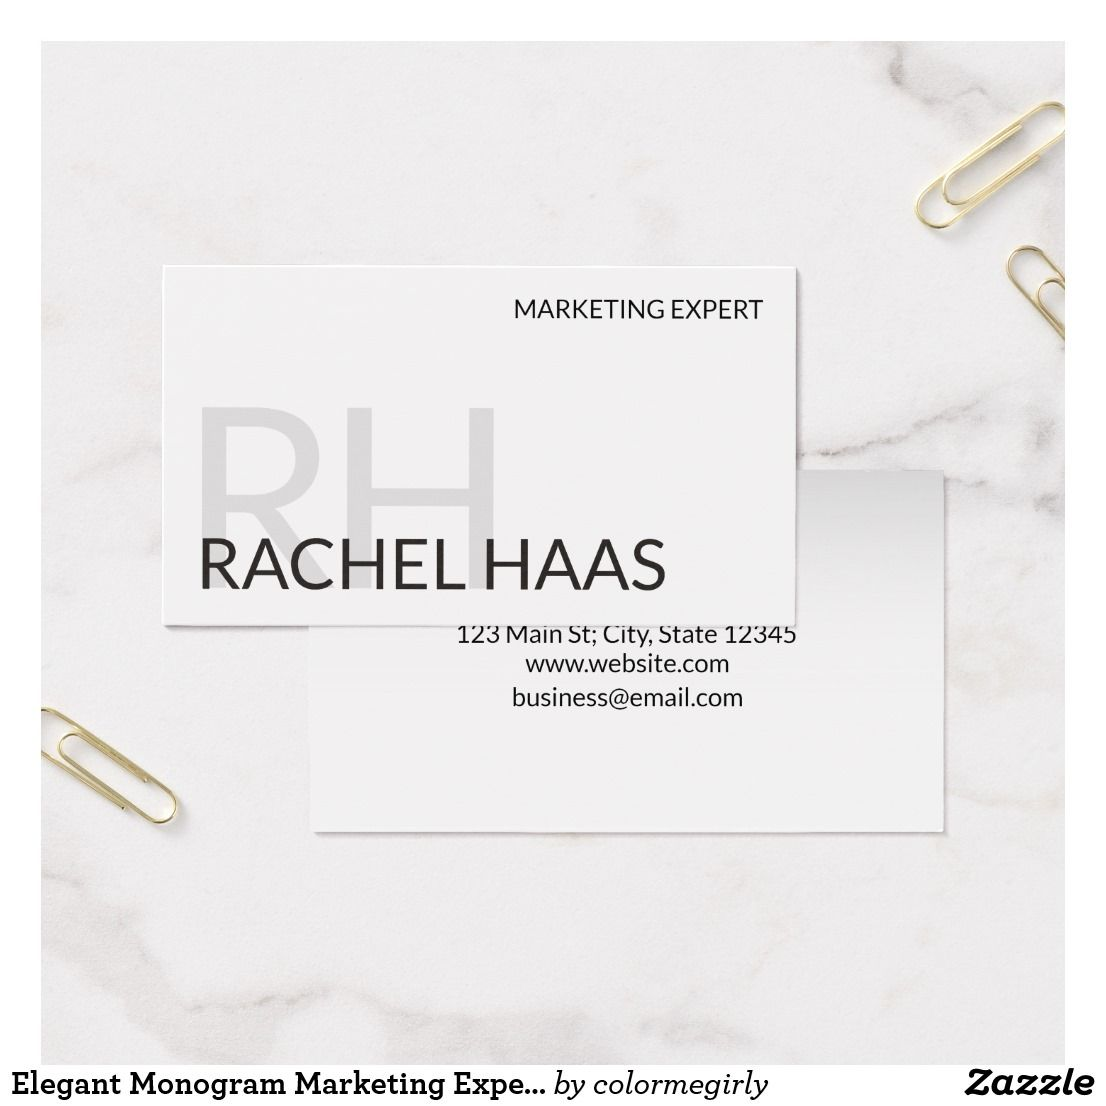 Elegant Monogram Marketing Expert Business Card | Office stationery ...